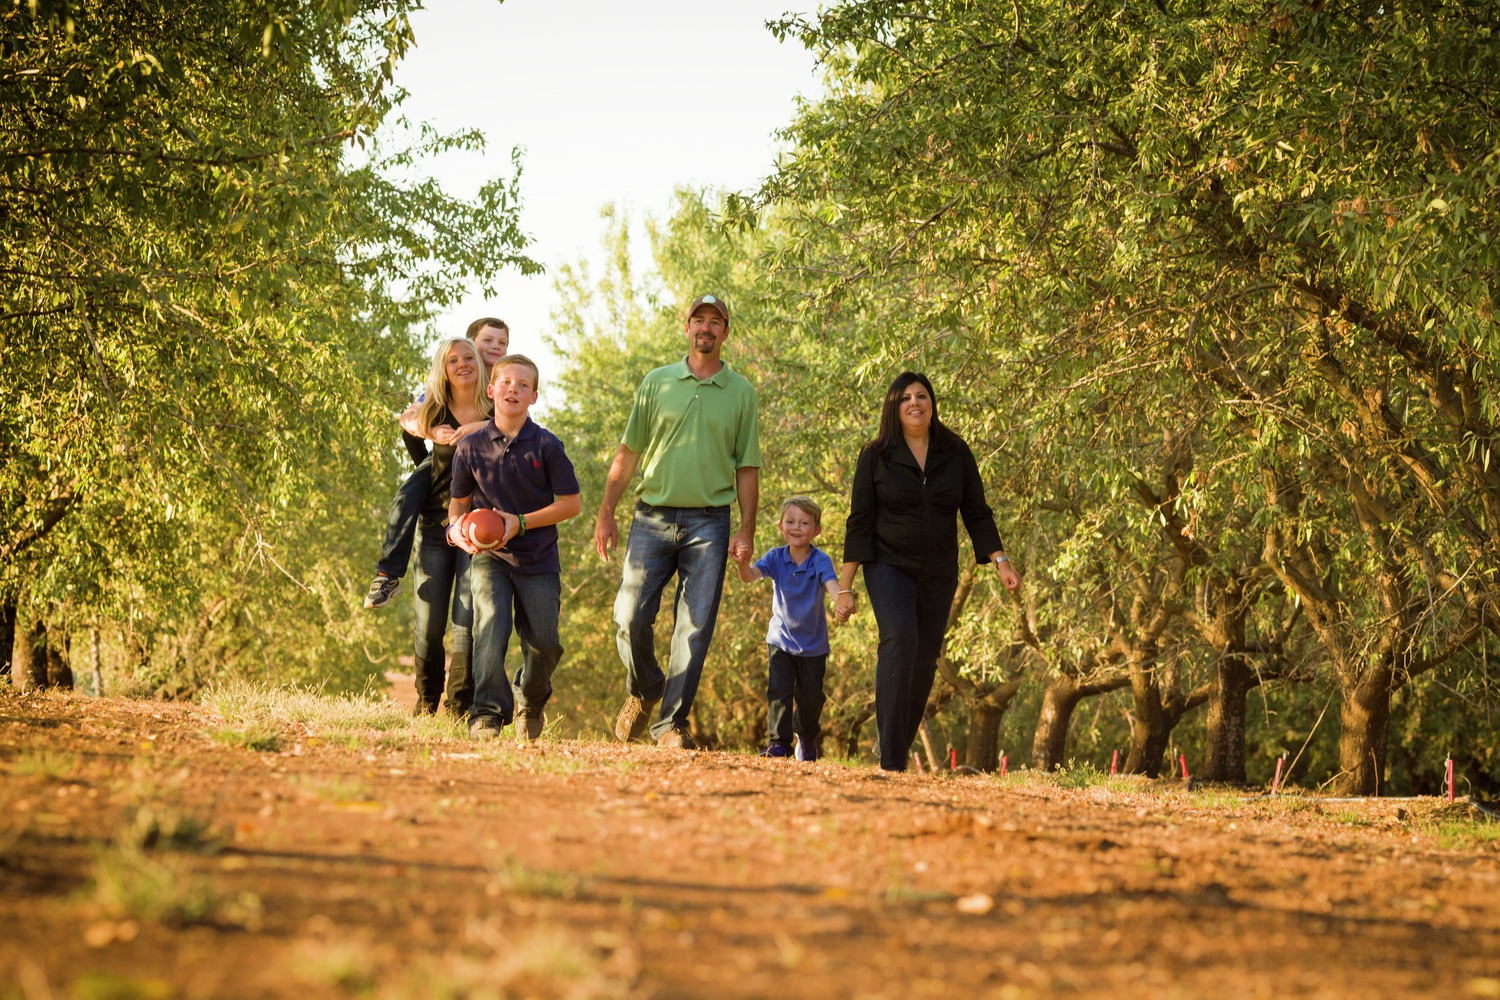 A family walking through an almond orchard.